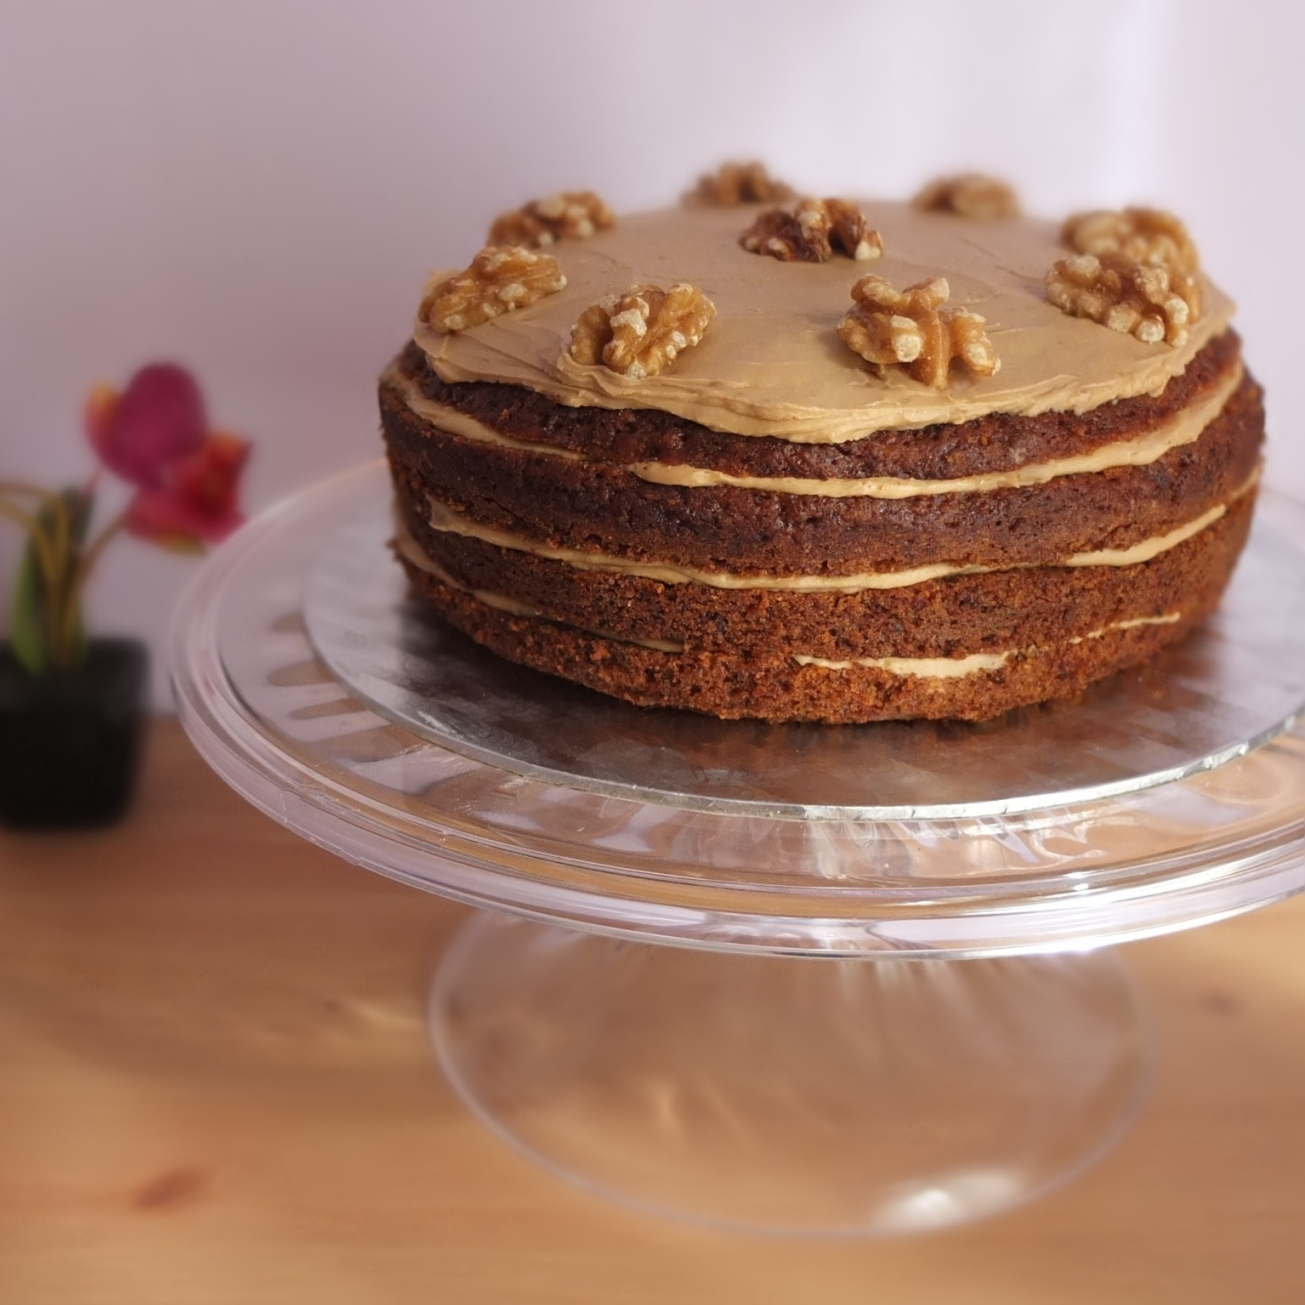 Slightly Healthier Coffee And Walnut Cake With Carrot